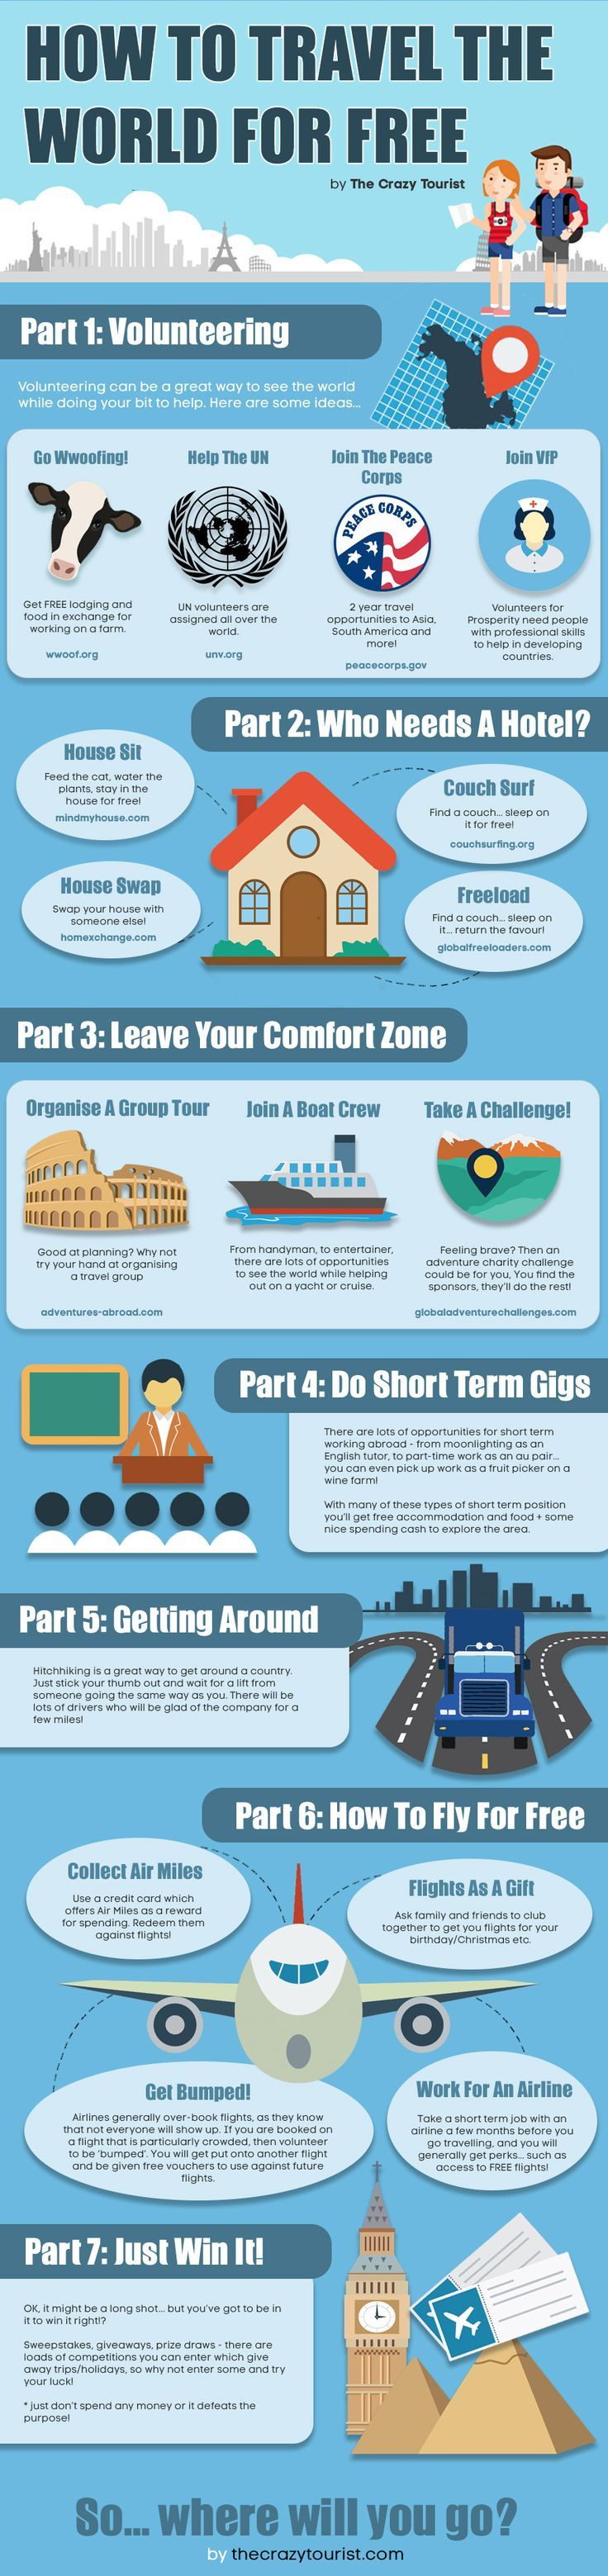 How to TRAVEL the World for FREE - this suggests ways in which you can eliminate certain costs from your travels )for example, free accommodation by house sitting or free food by Wwoofing ) . Of course, it's probably impossible to make a trip completely free, but here are some ideas to at least cut the costs down. Infographic.